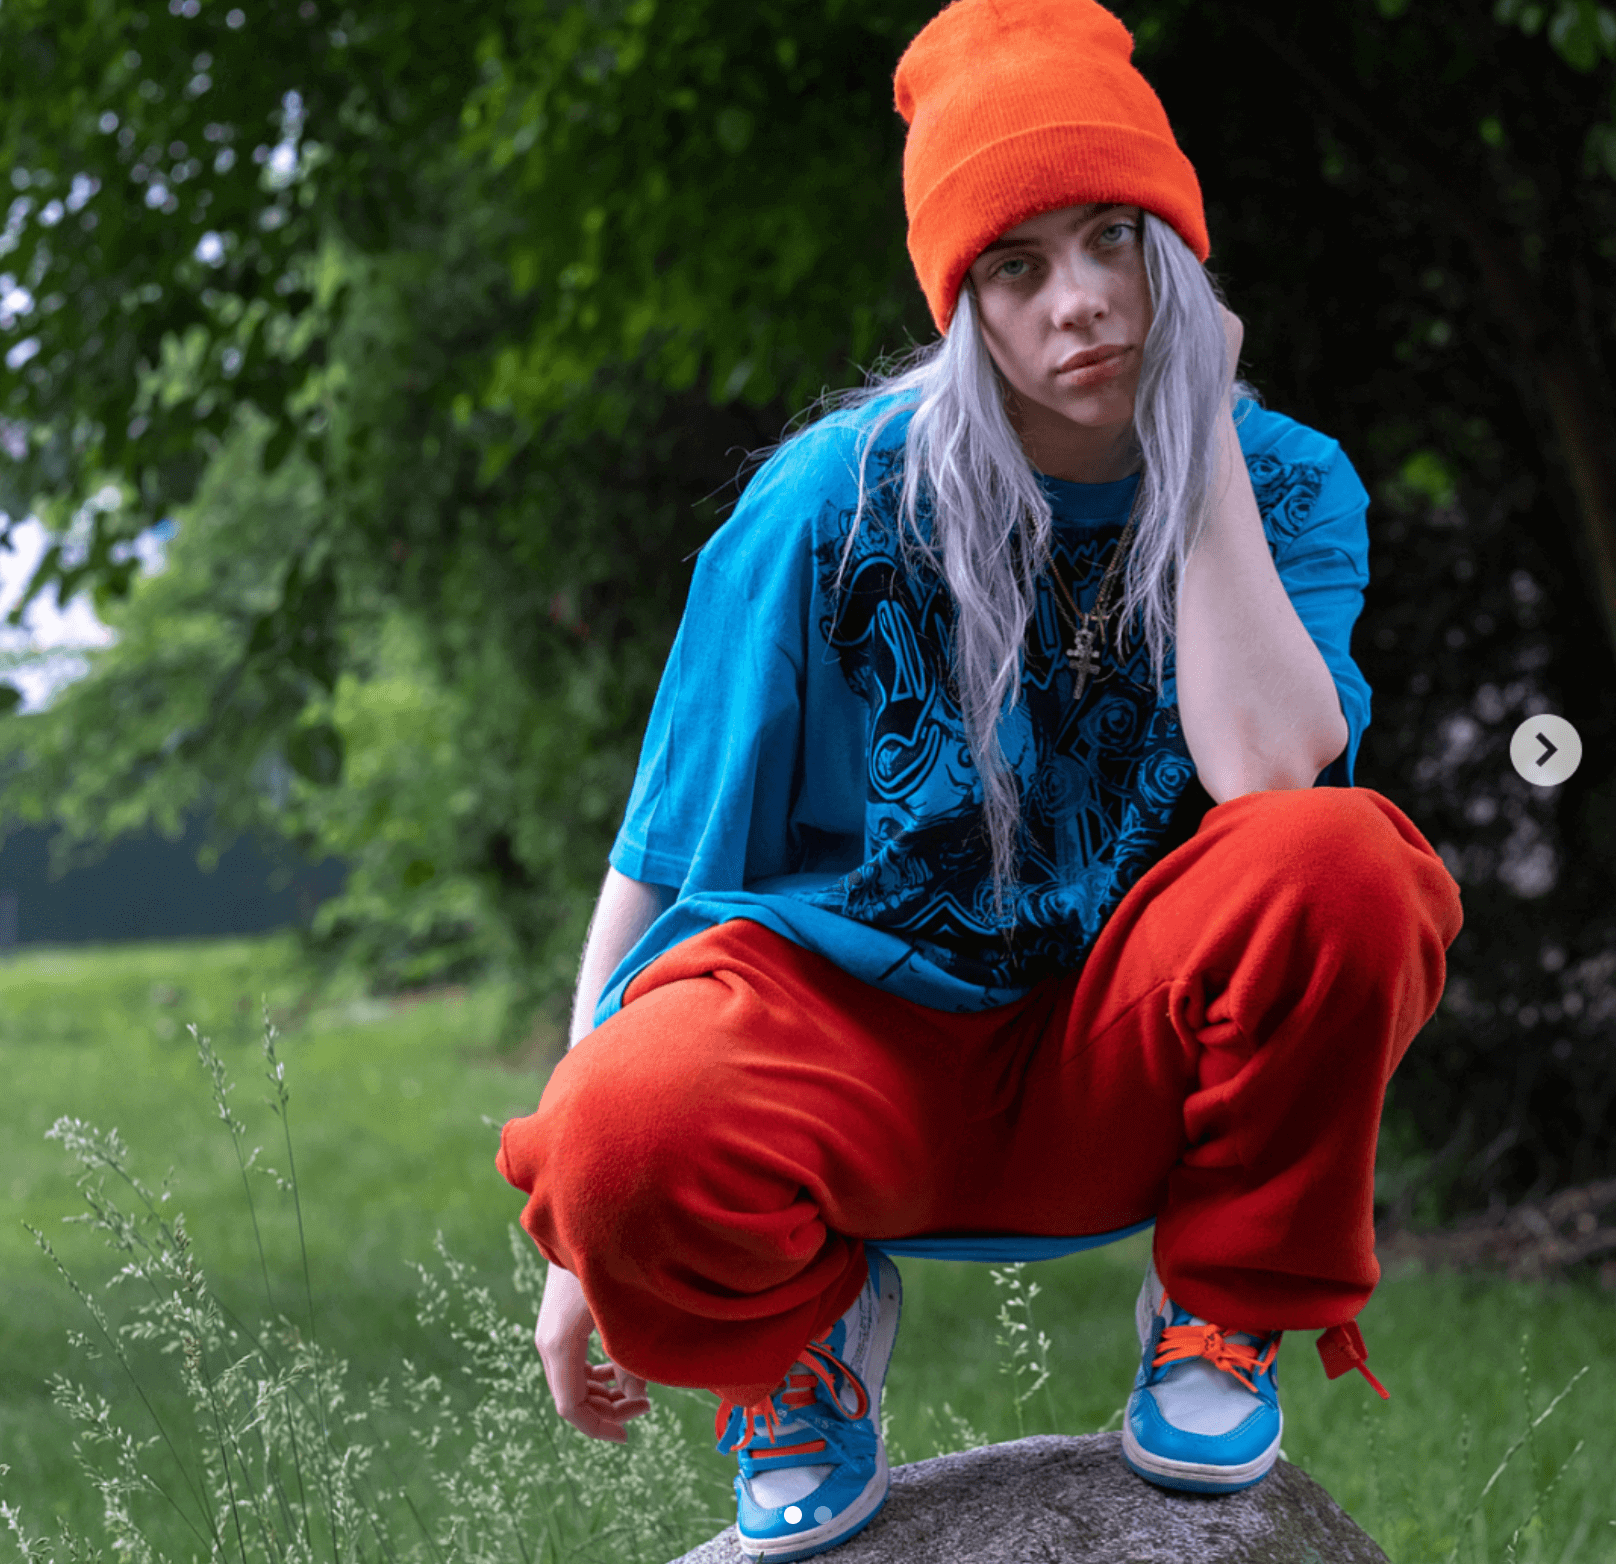 Billie Eilish in the Off White x Air Jordan 1